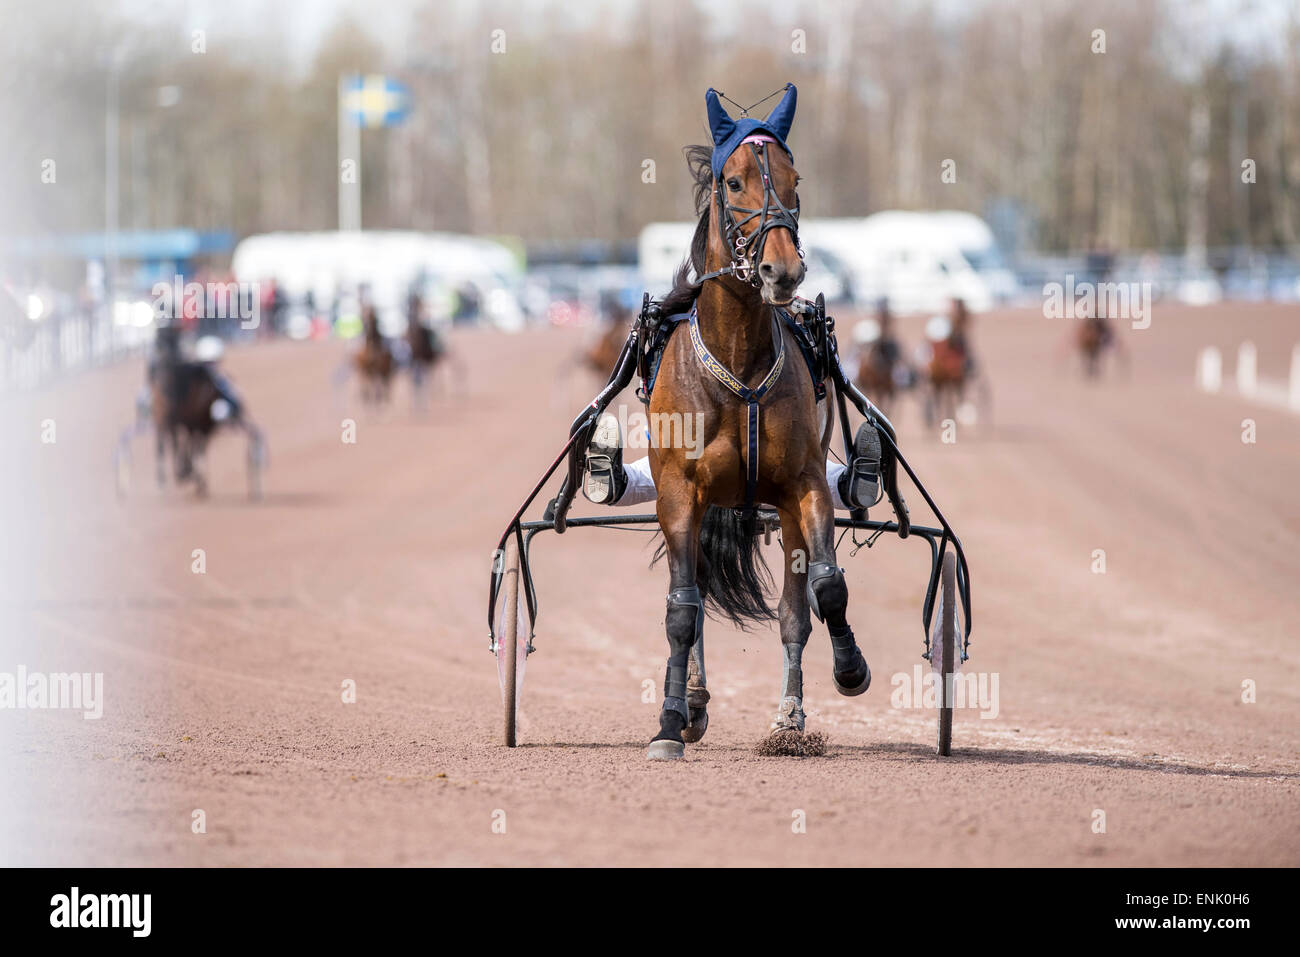 Horse Stylish Hanover is being preparing for a race at Mantorp harness race course. - Stock Image